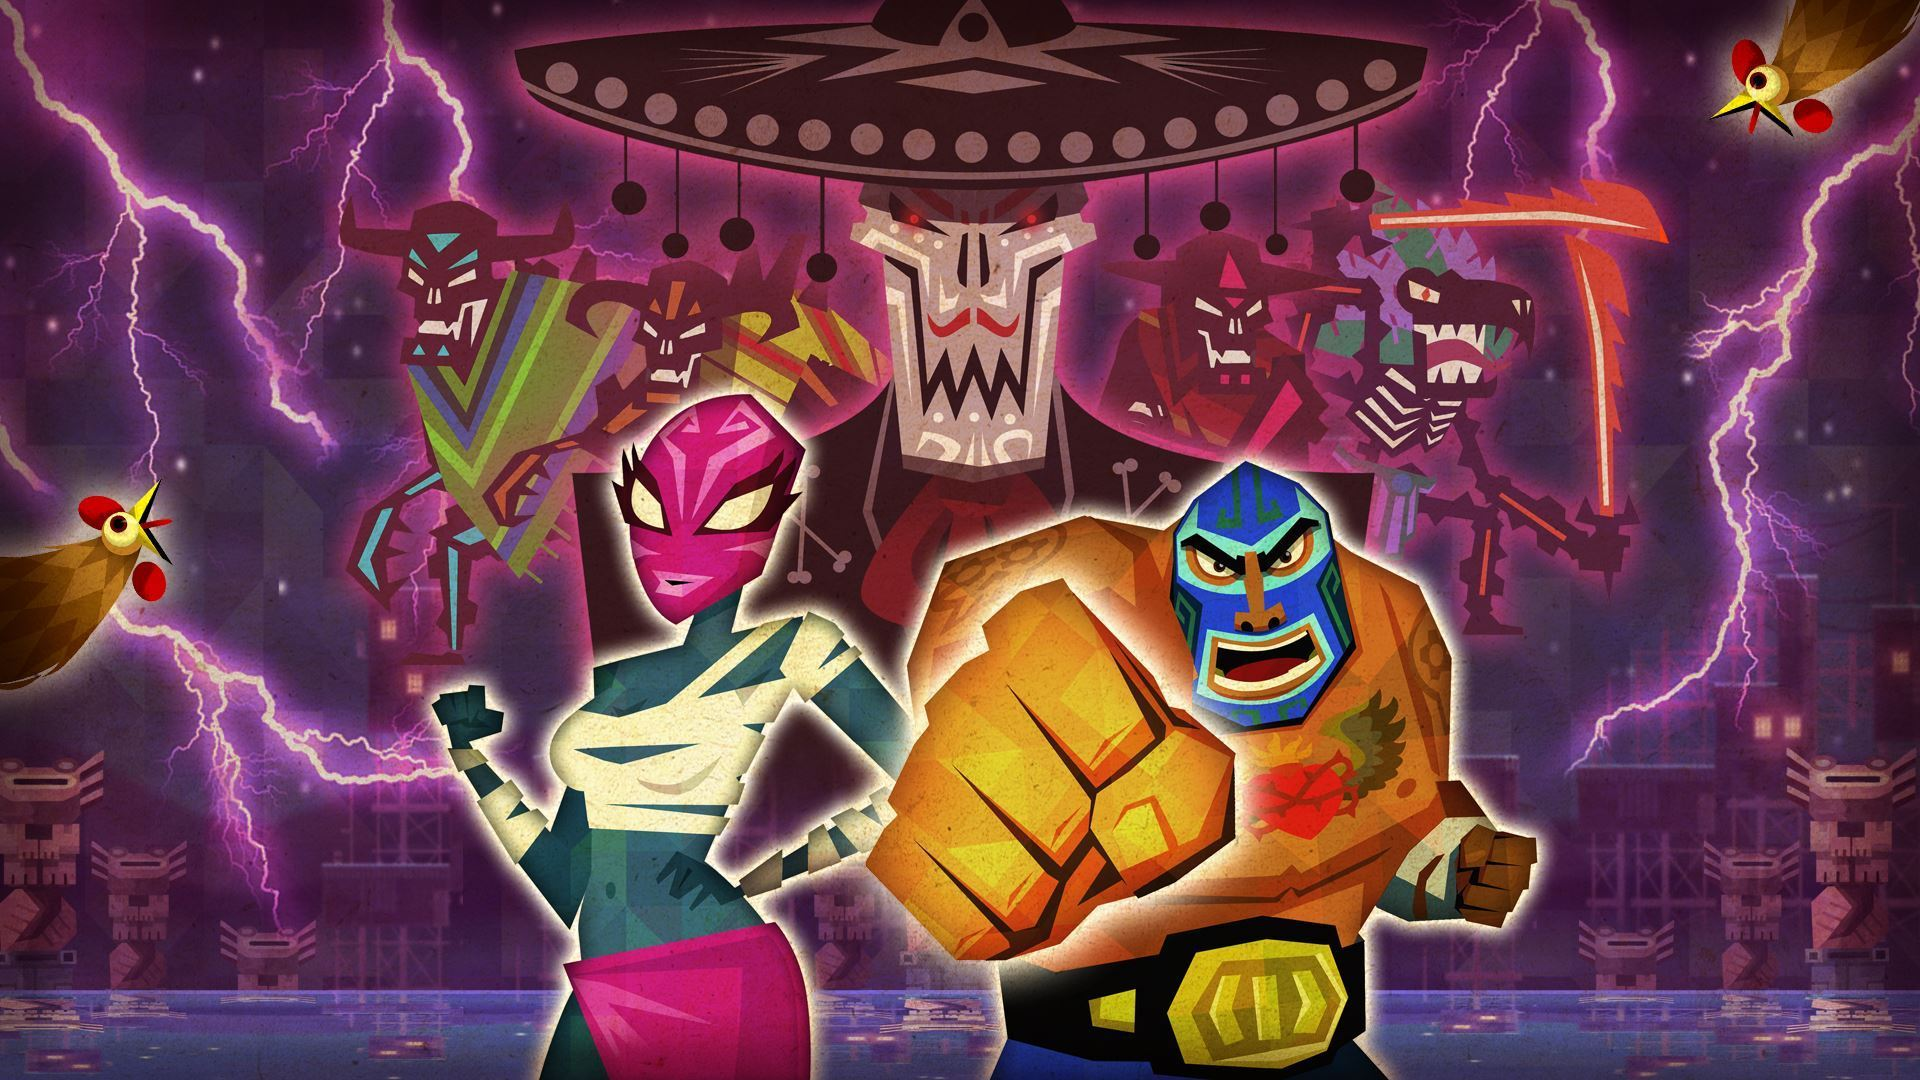 Guacamelee Indie Game HD Wallpaper Background 18593 Wallur 1920x1080